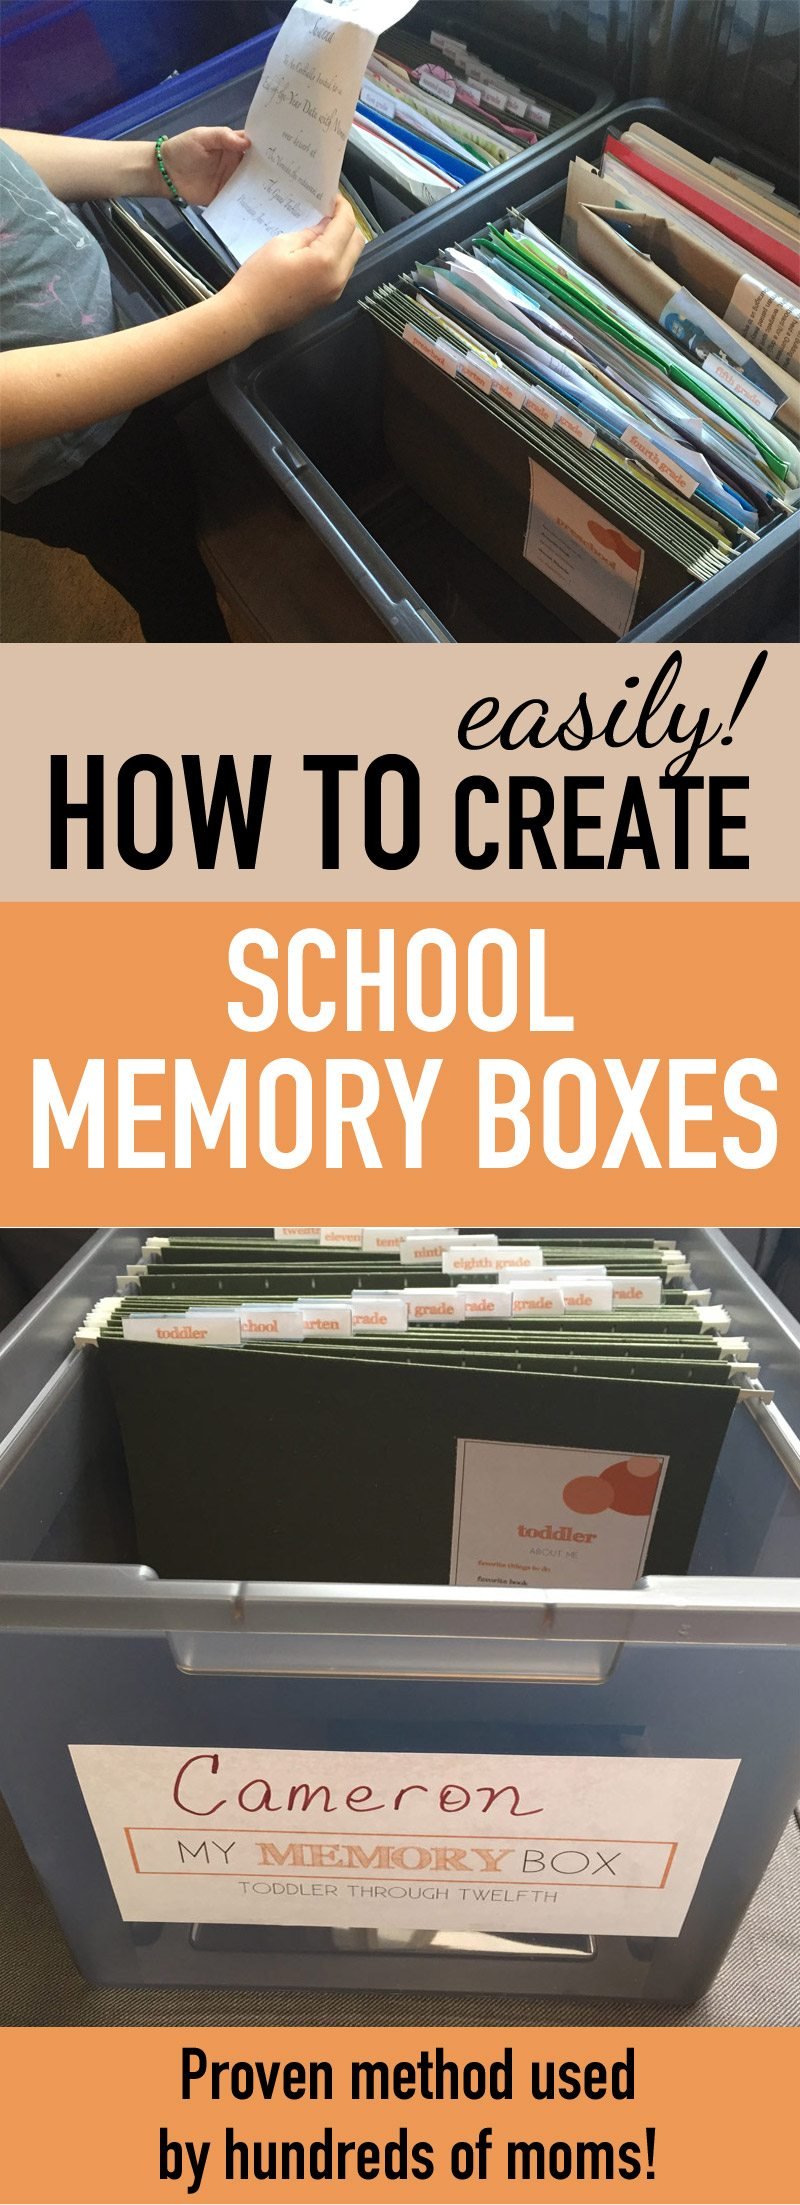 school keepsake box | organize kids school papers | school papers kids | keepsake memory boxes | memory box ideas | school papers kids